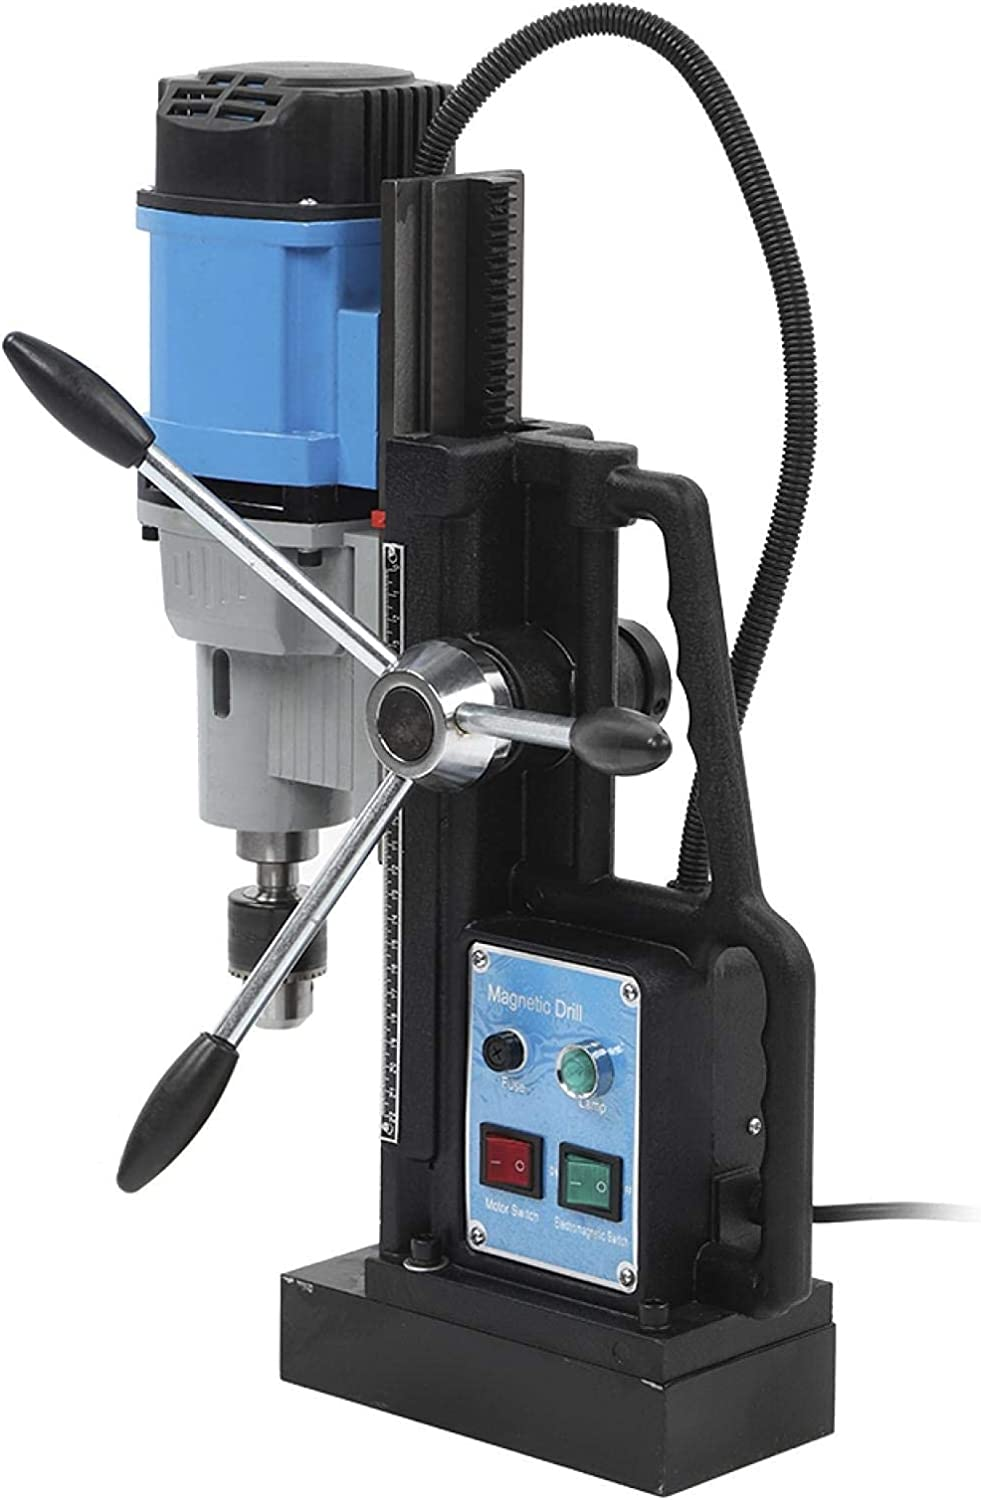 1 year warranty Magnetic Drill J1C-23S 1800W Switchable British Reaming Easy-to-use Flag MT2